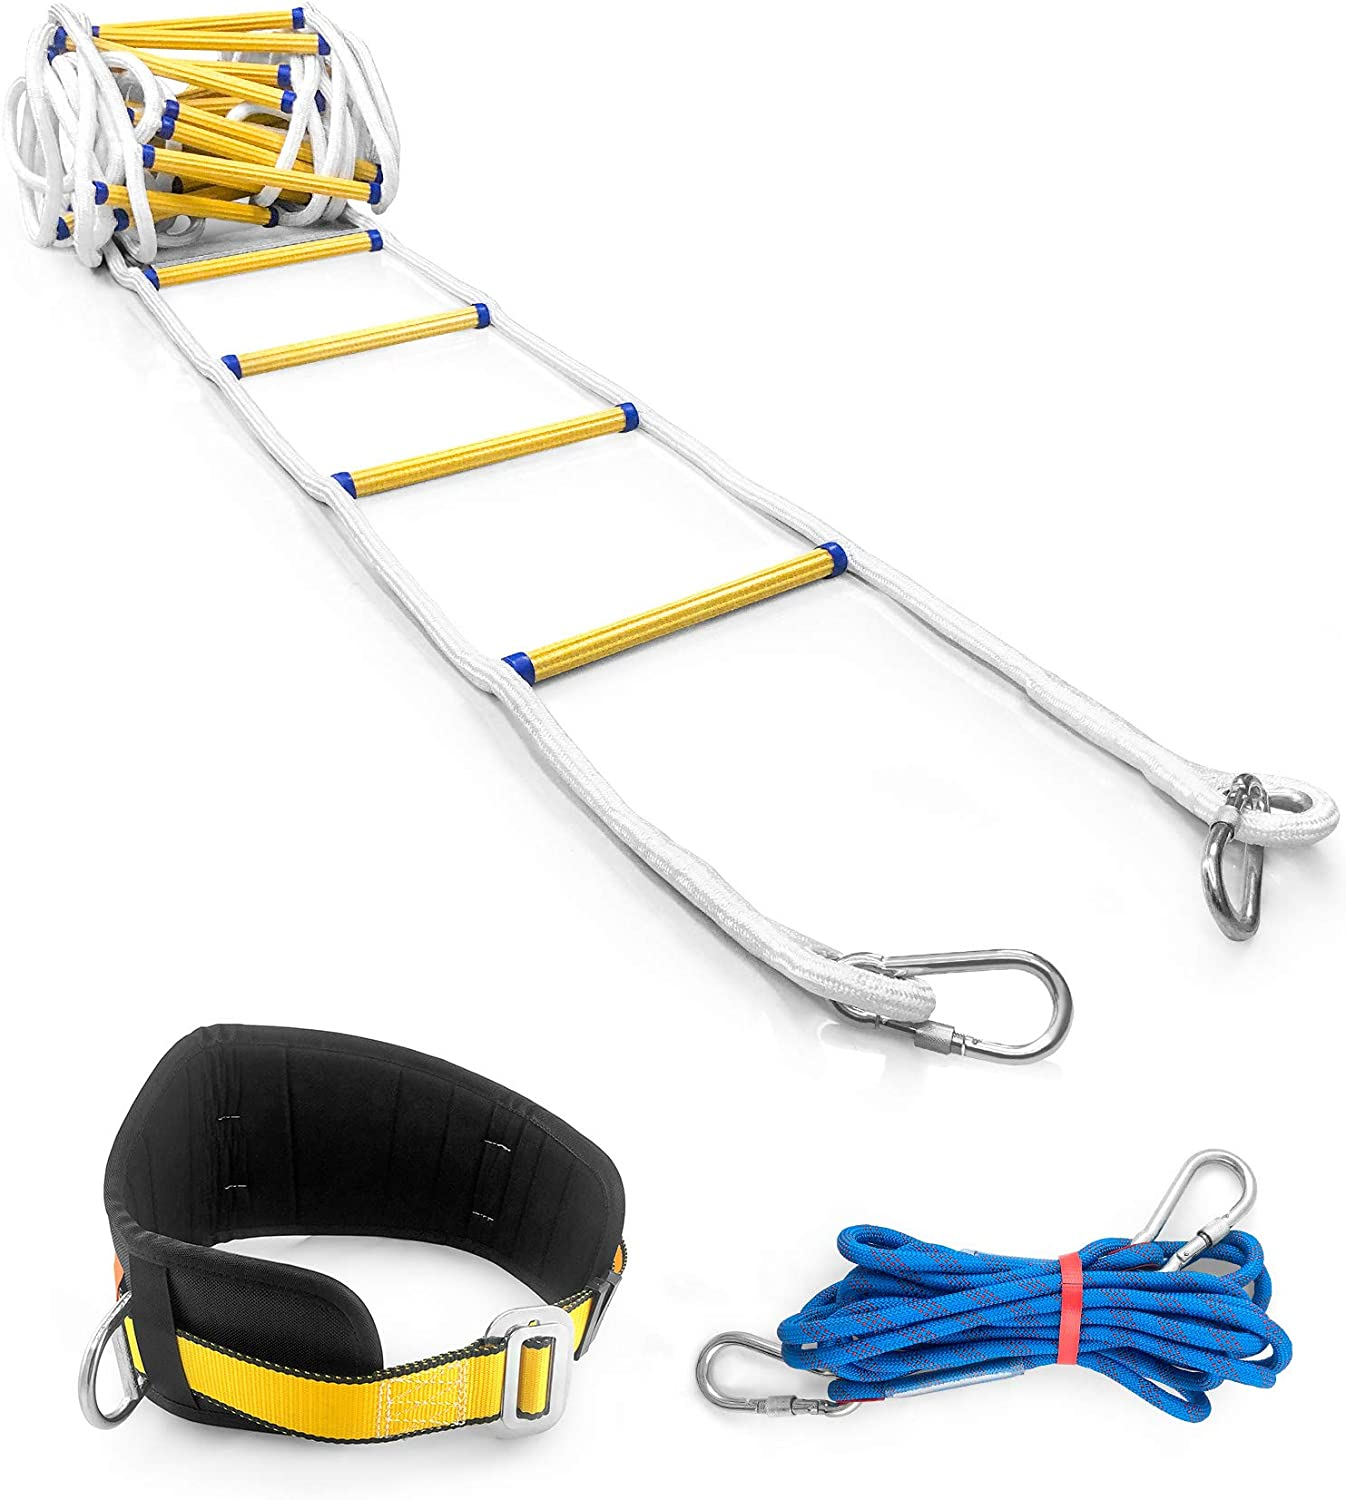 QWORK 32 FT Emergency Fire Ladder Resistant Safety Rope Escape Ladder with Carabiners & Safety Cord & Safety Belt for Fast to Deploy in Fire, 3-4 Story